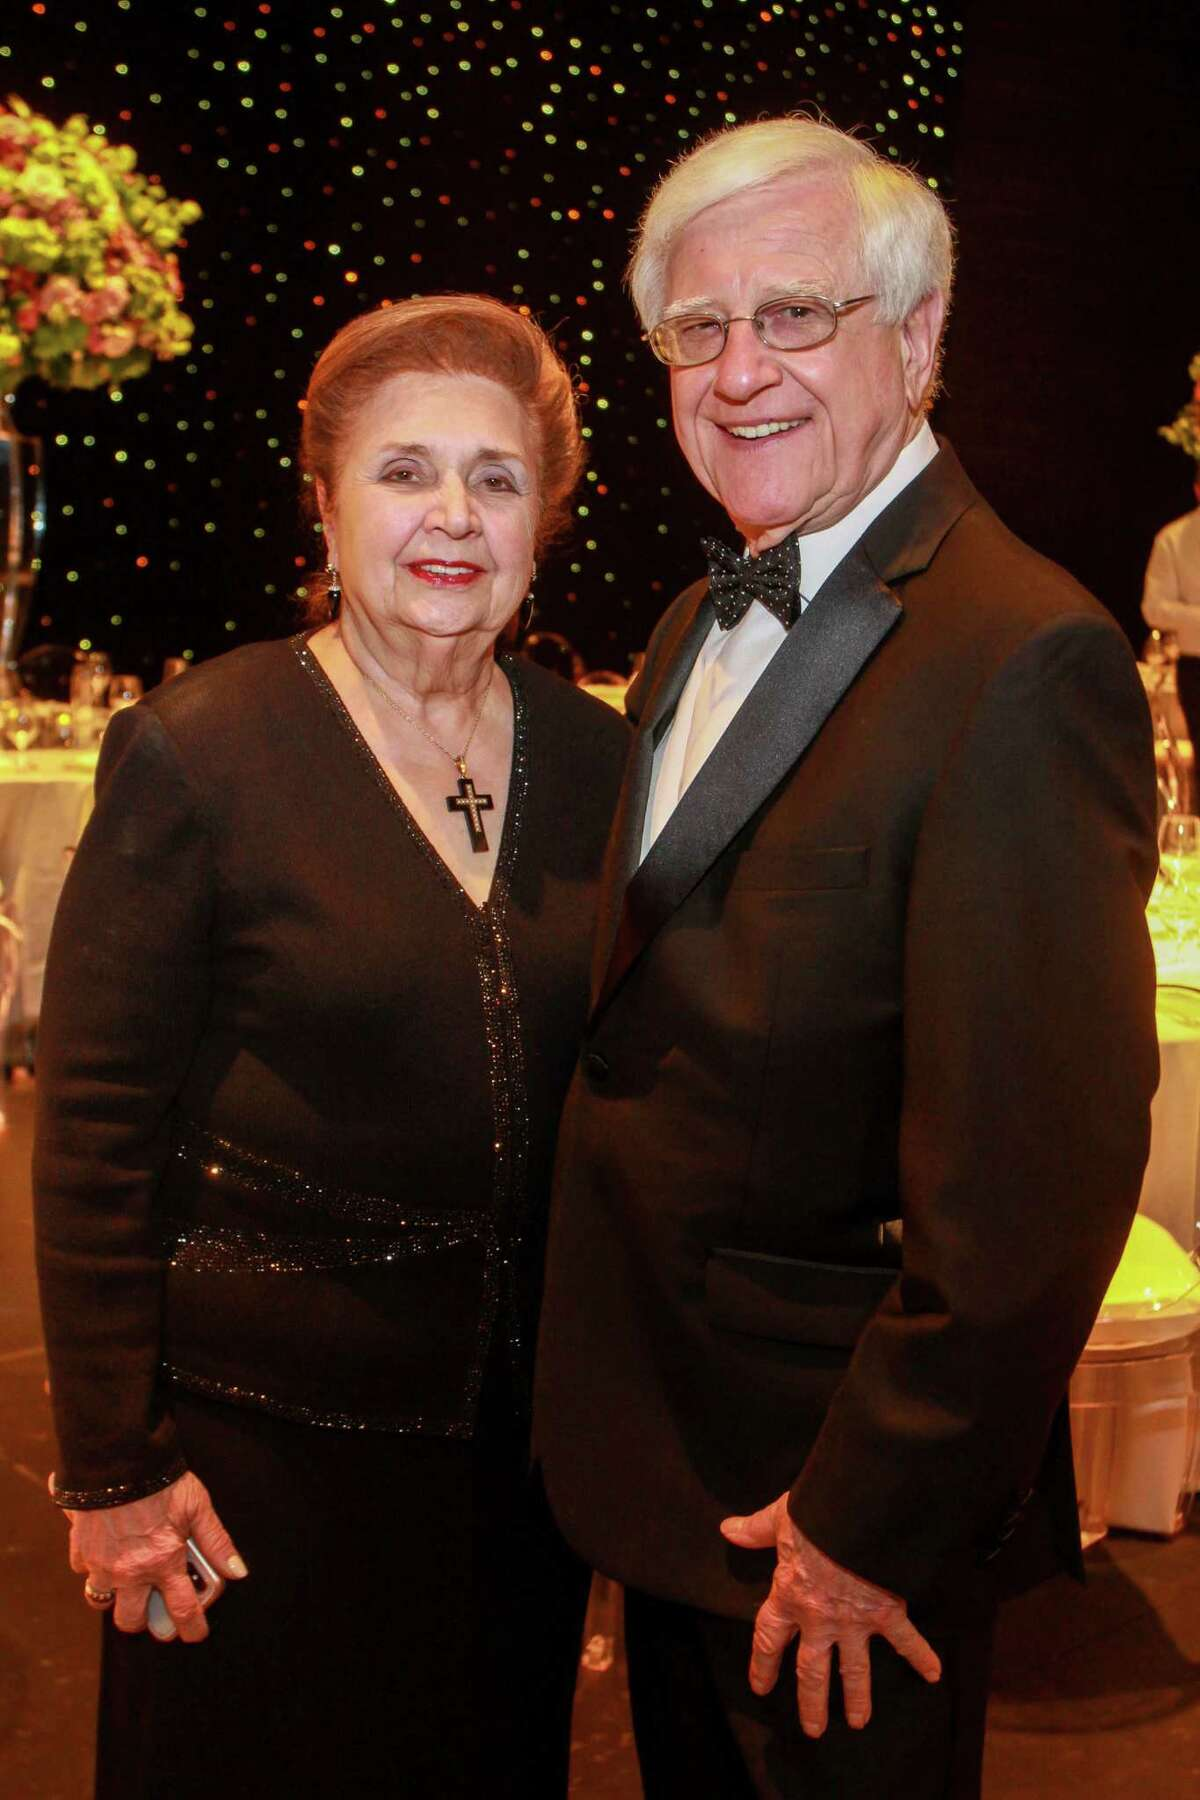 Helen and Jim Shaffer at the TUTS gala at the Hobby Center.